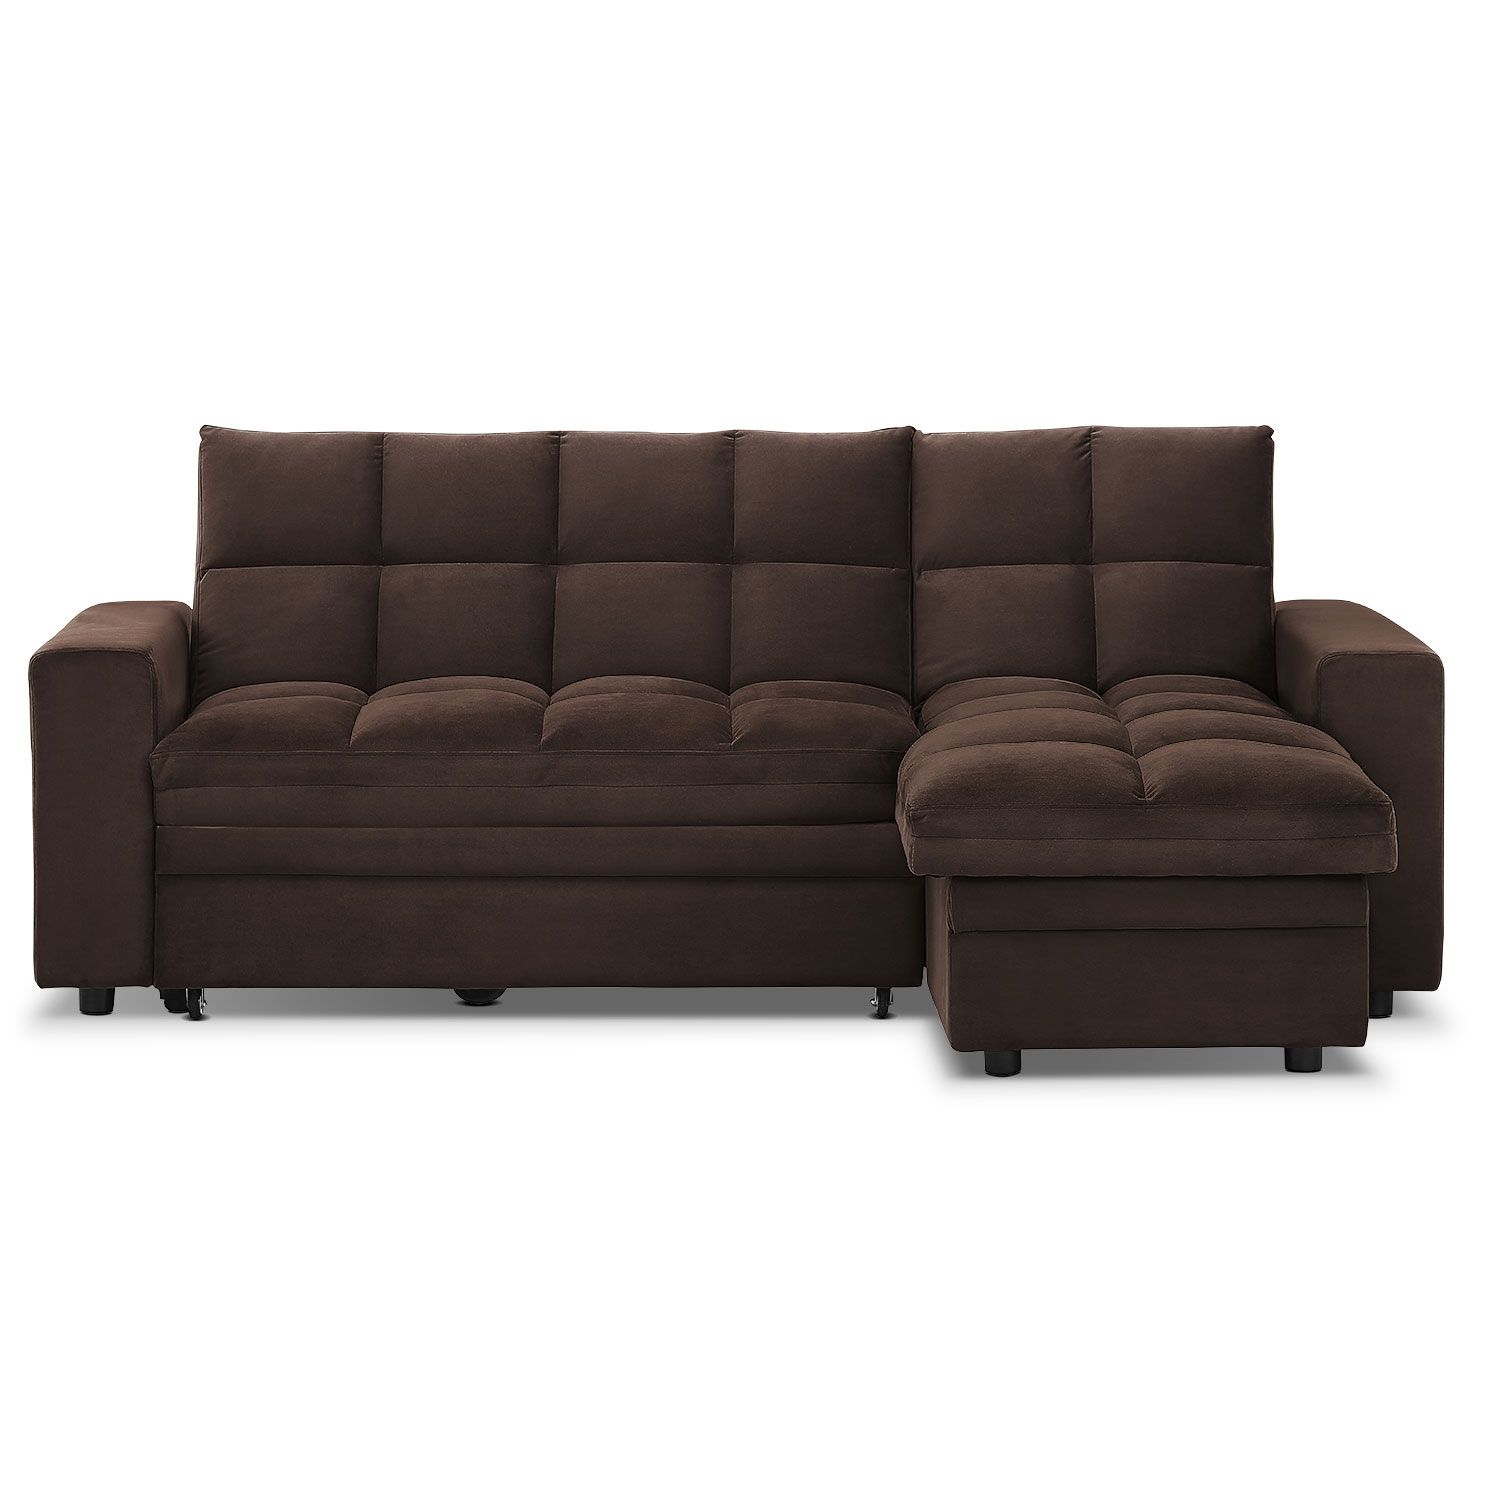 Living Room Furniture - Metro 2 Pc. Chaise Sofa Bed w/ Storage ...